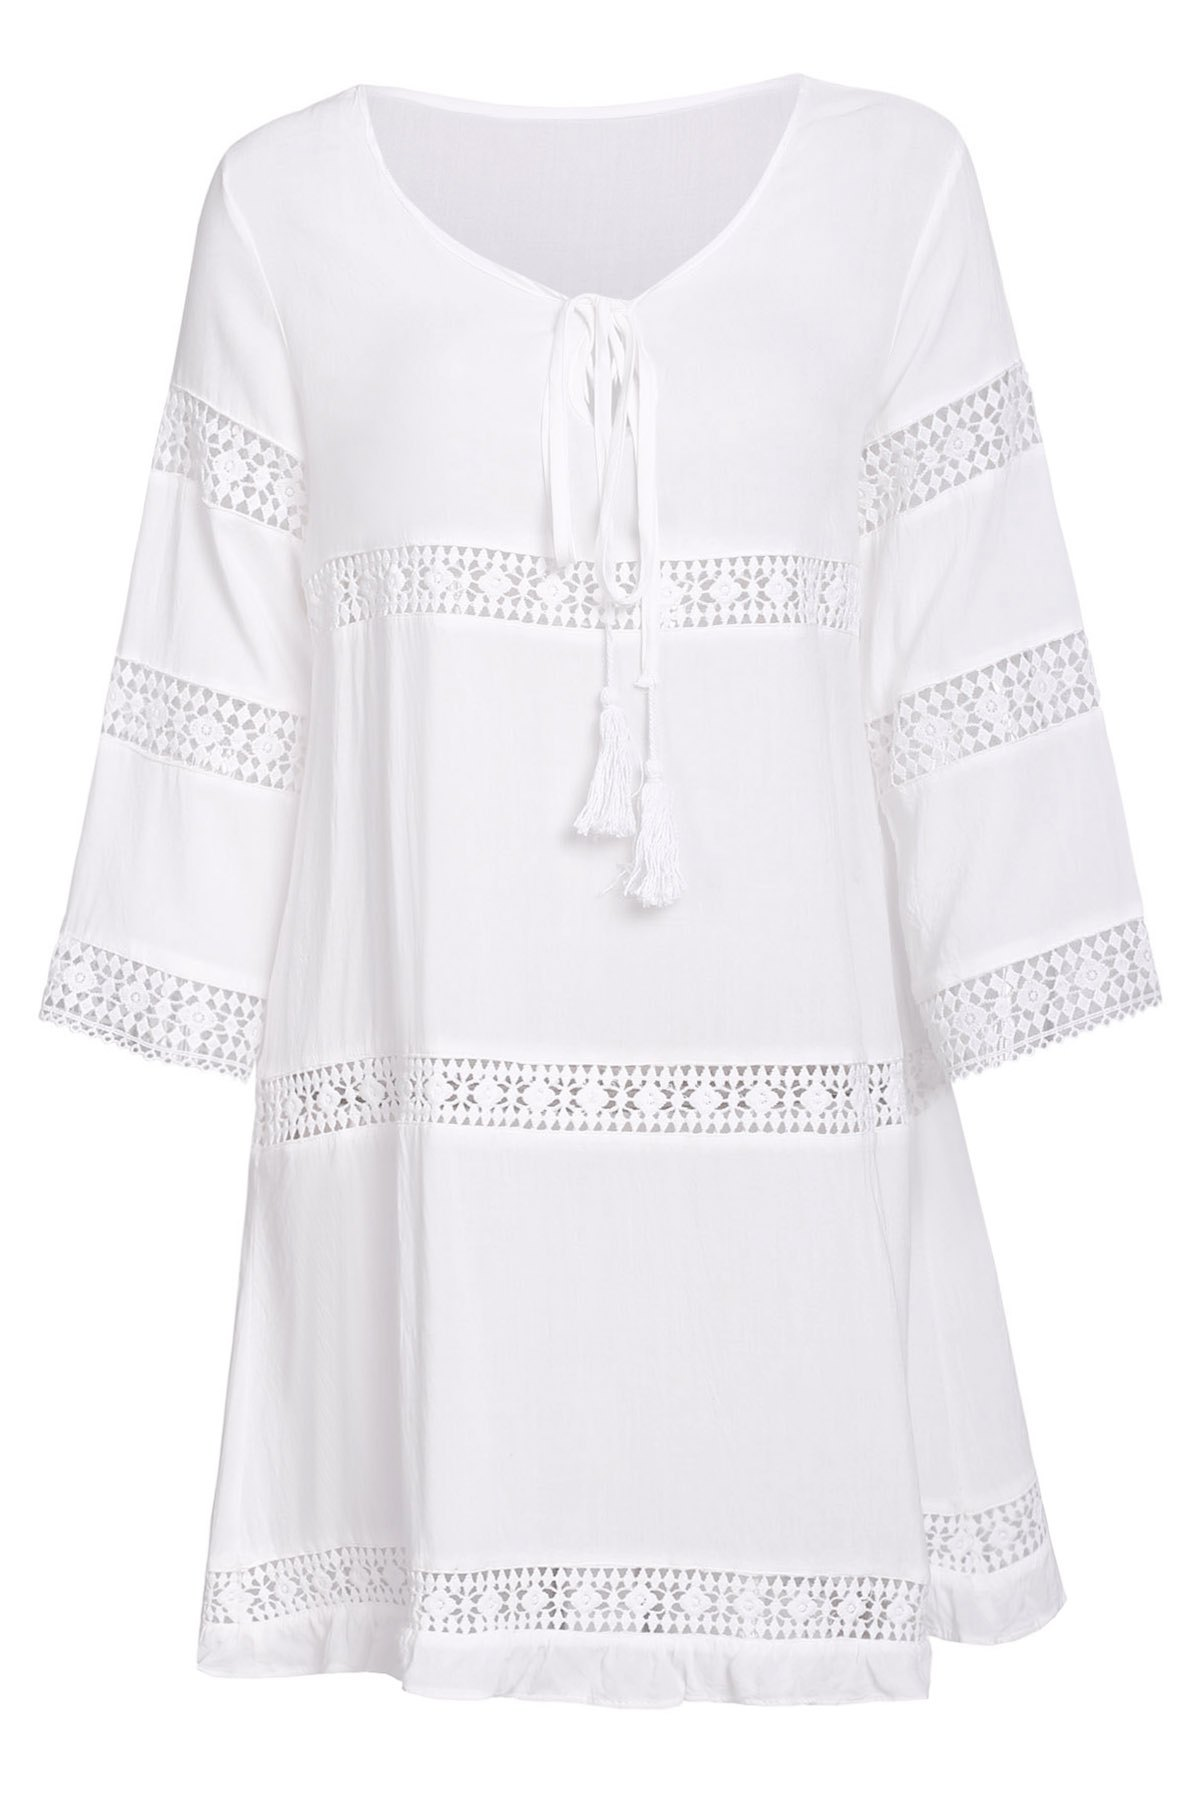 Simple 3/4 Sleeve Scoop Collar Pure Color Women's Dress - WHITE L